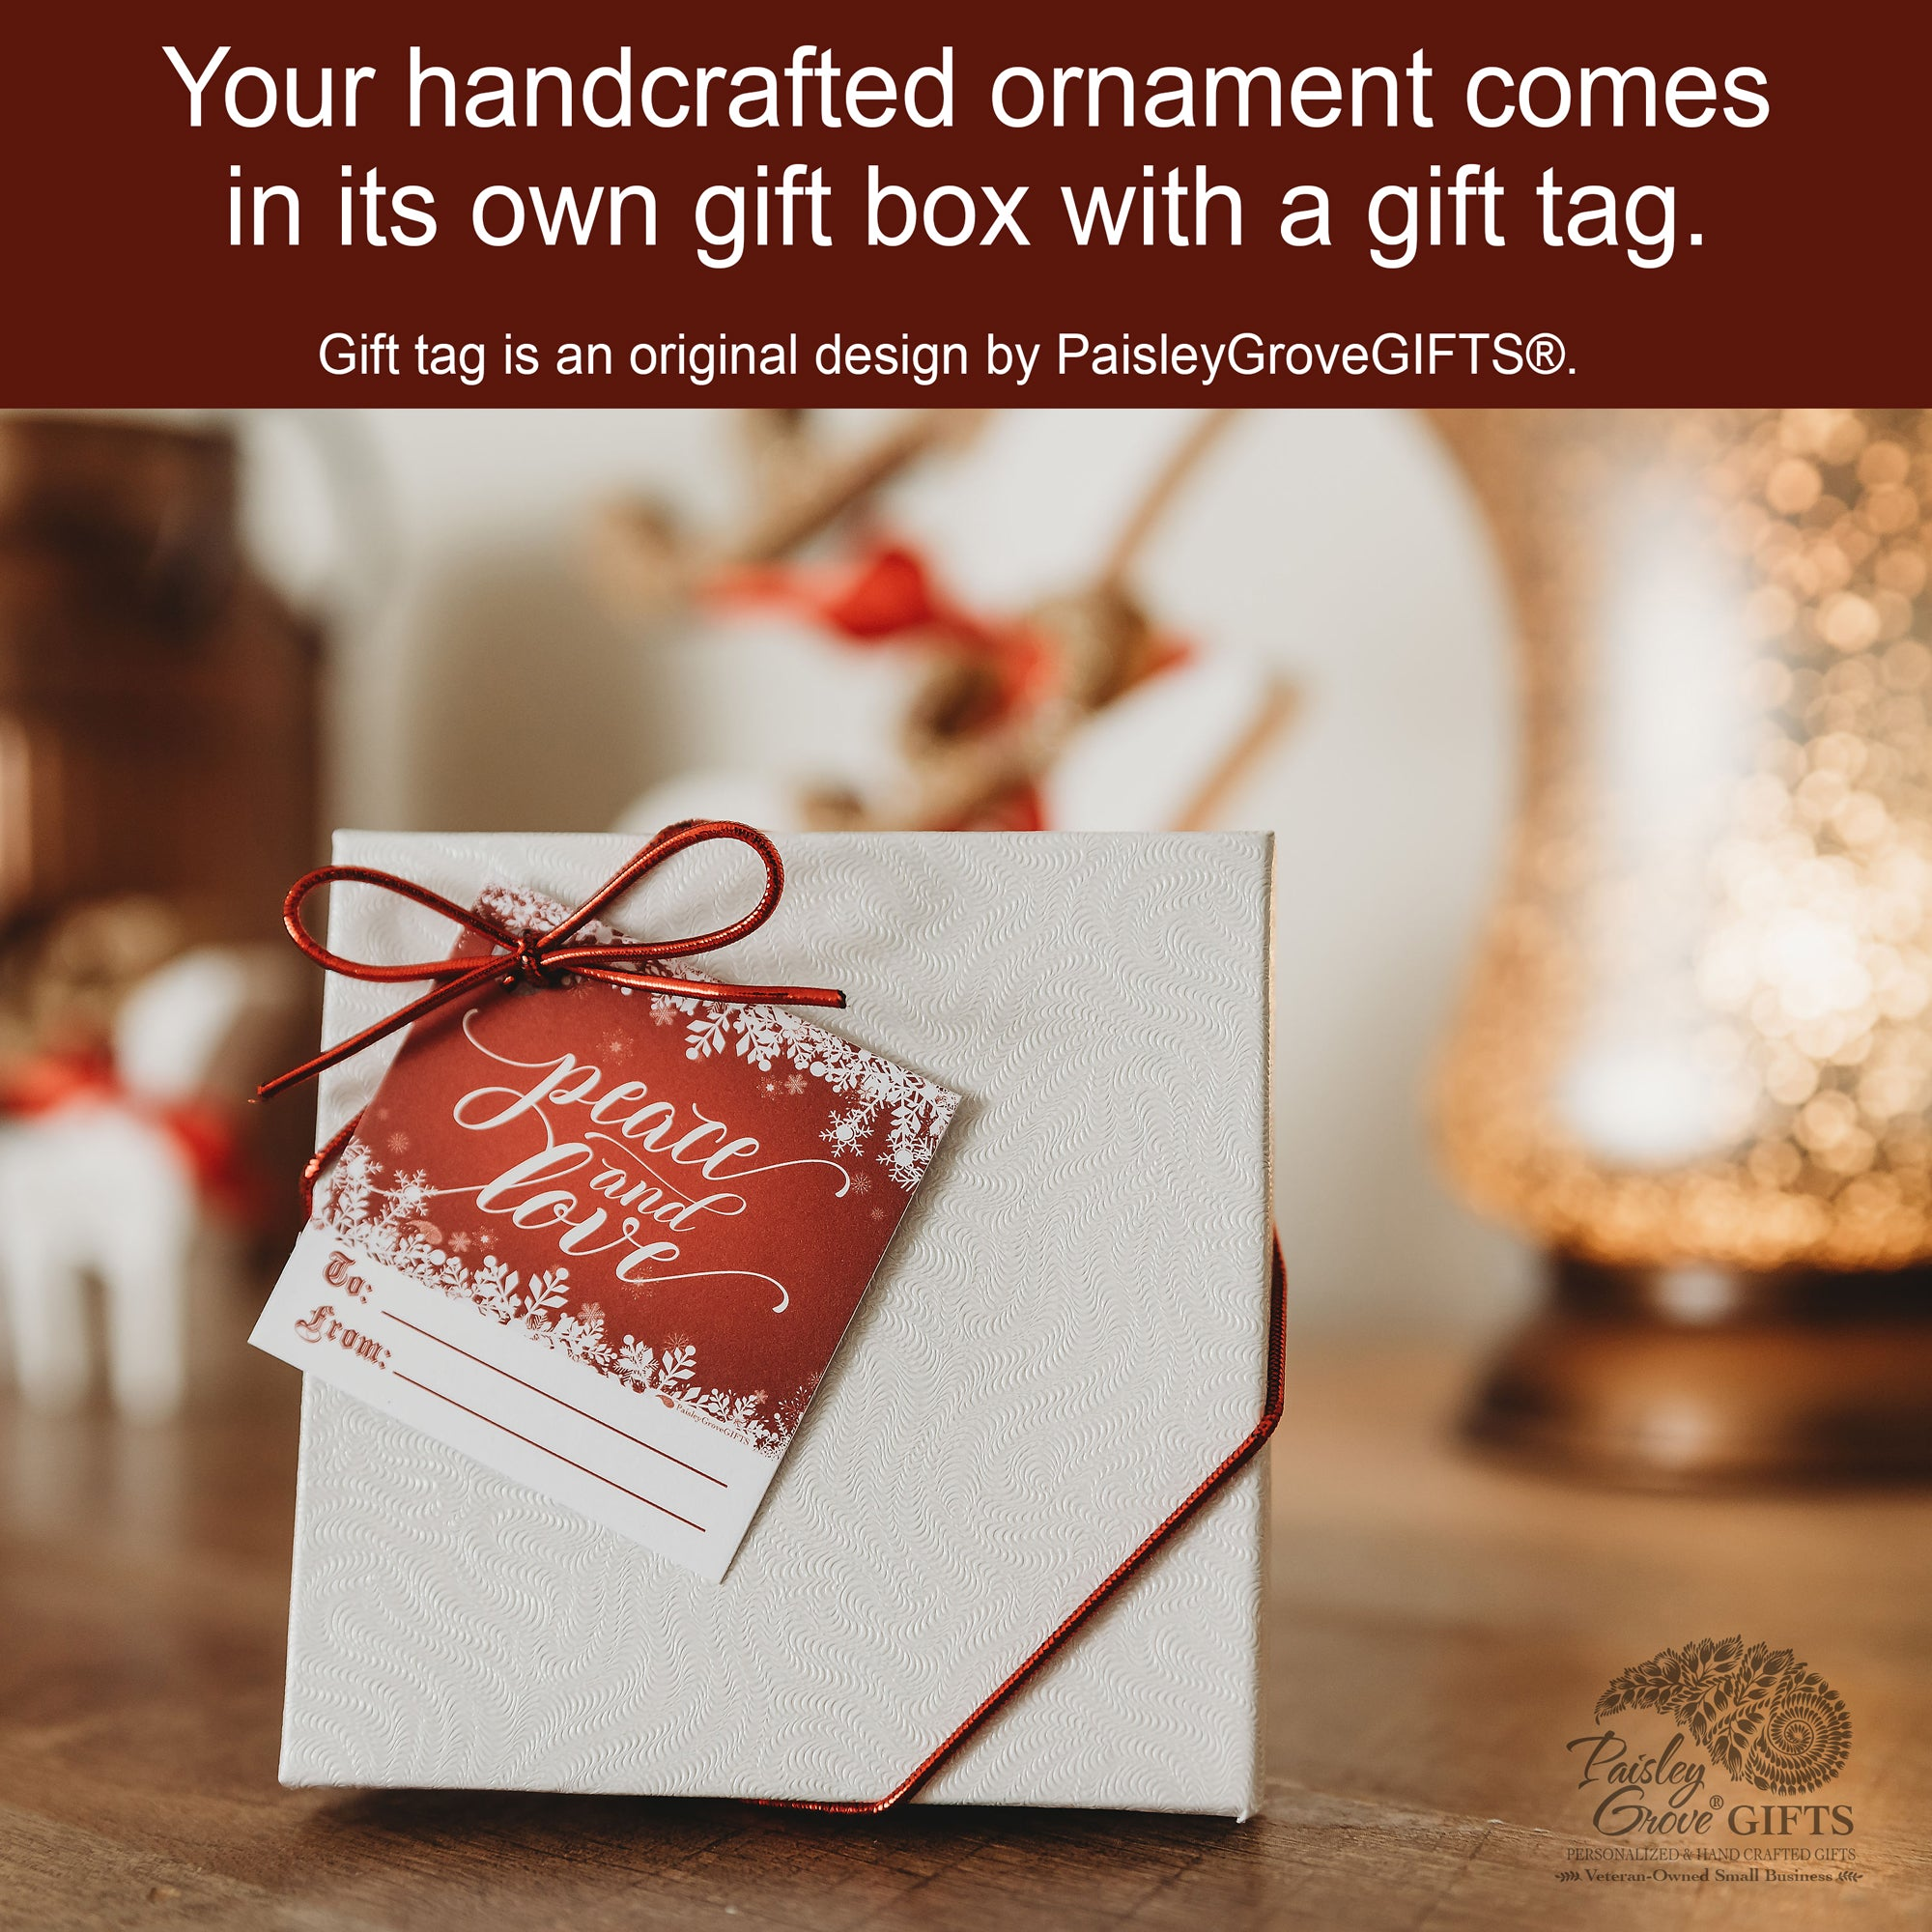 CopyrightPaisleyGroveGIFTS S502m 1st Christmas Custom Ornament comes with a free gift box and gift tag